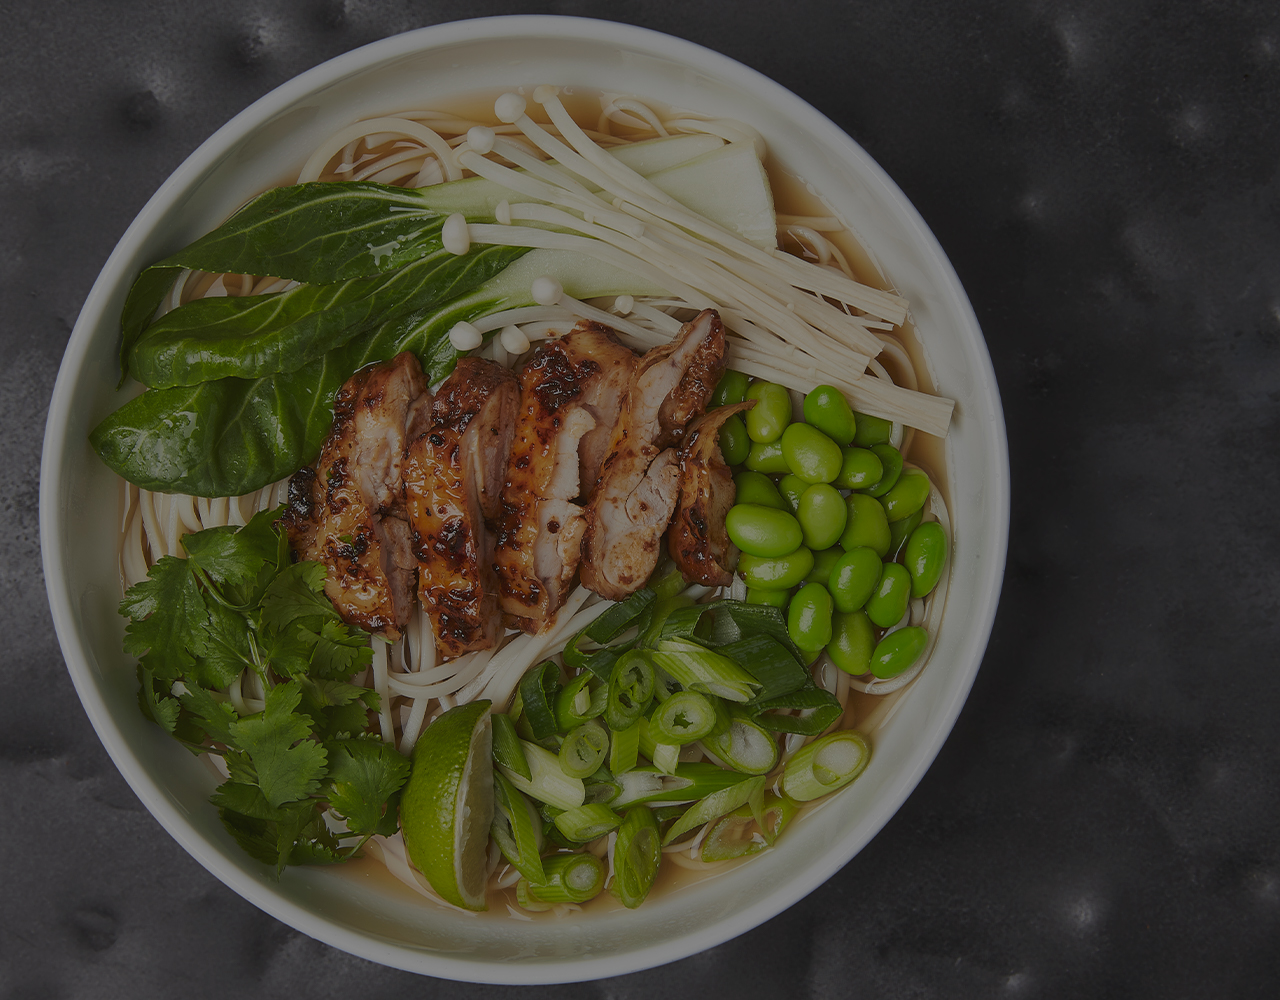 Chicken and mushroom salad with noodles and edamame beans